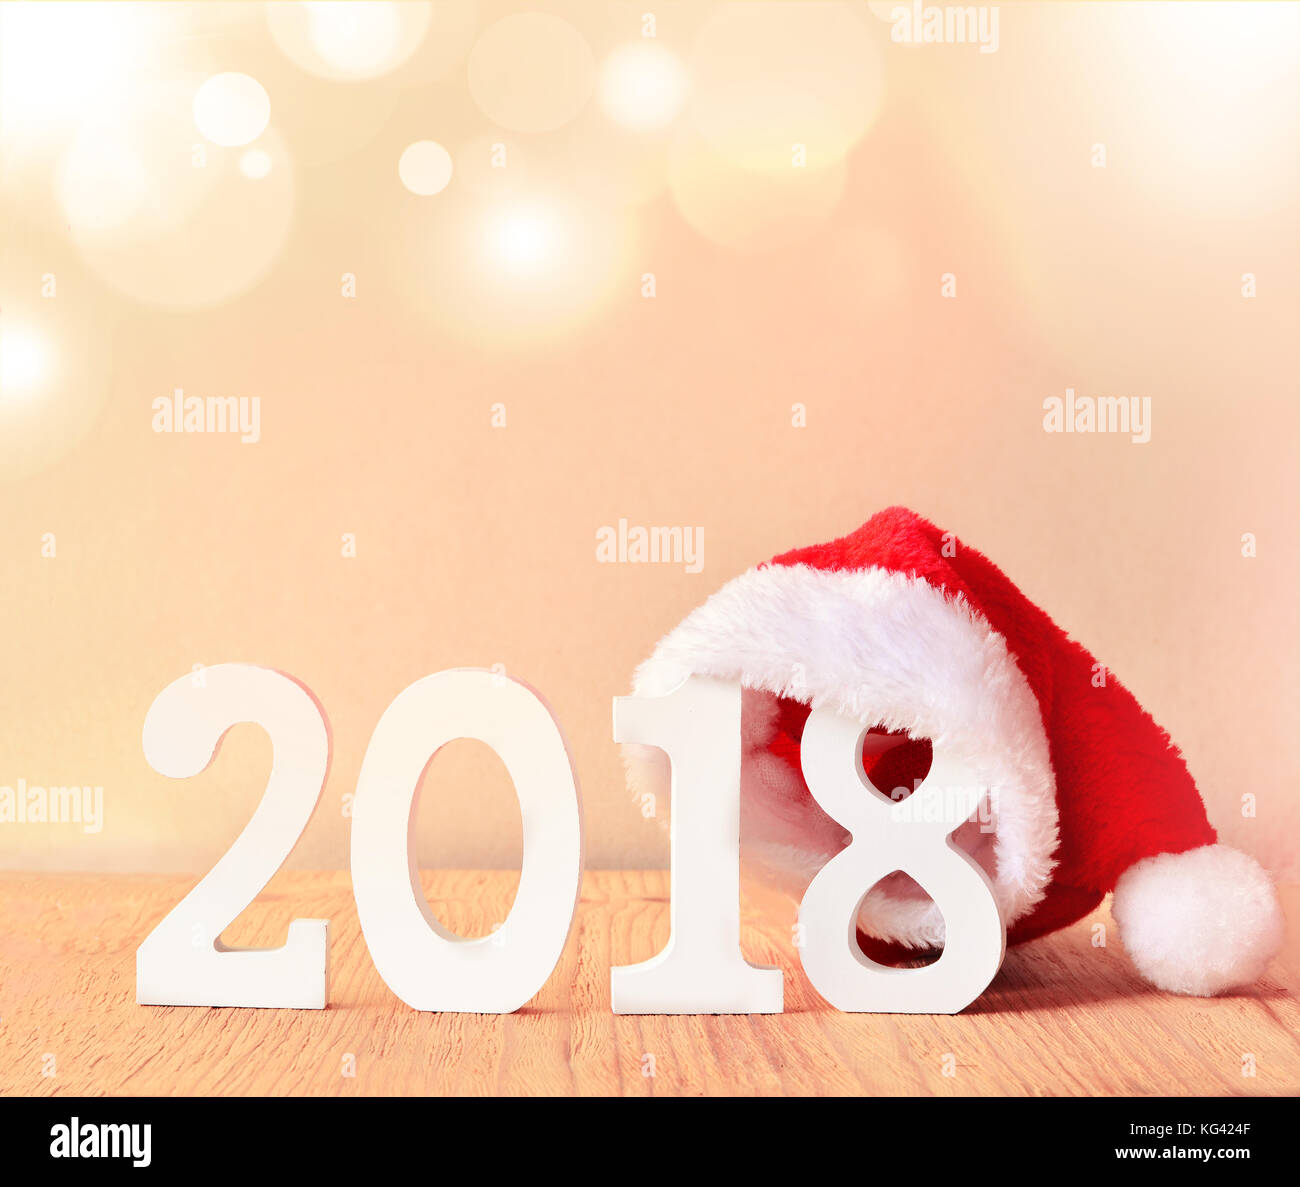 santa fur cap on a rustic wooden background with figures 2018 - Stock Image